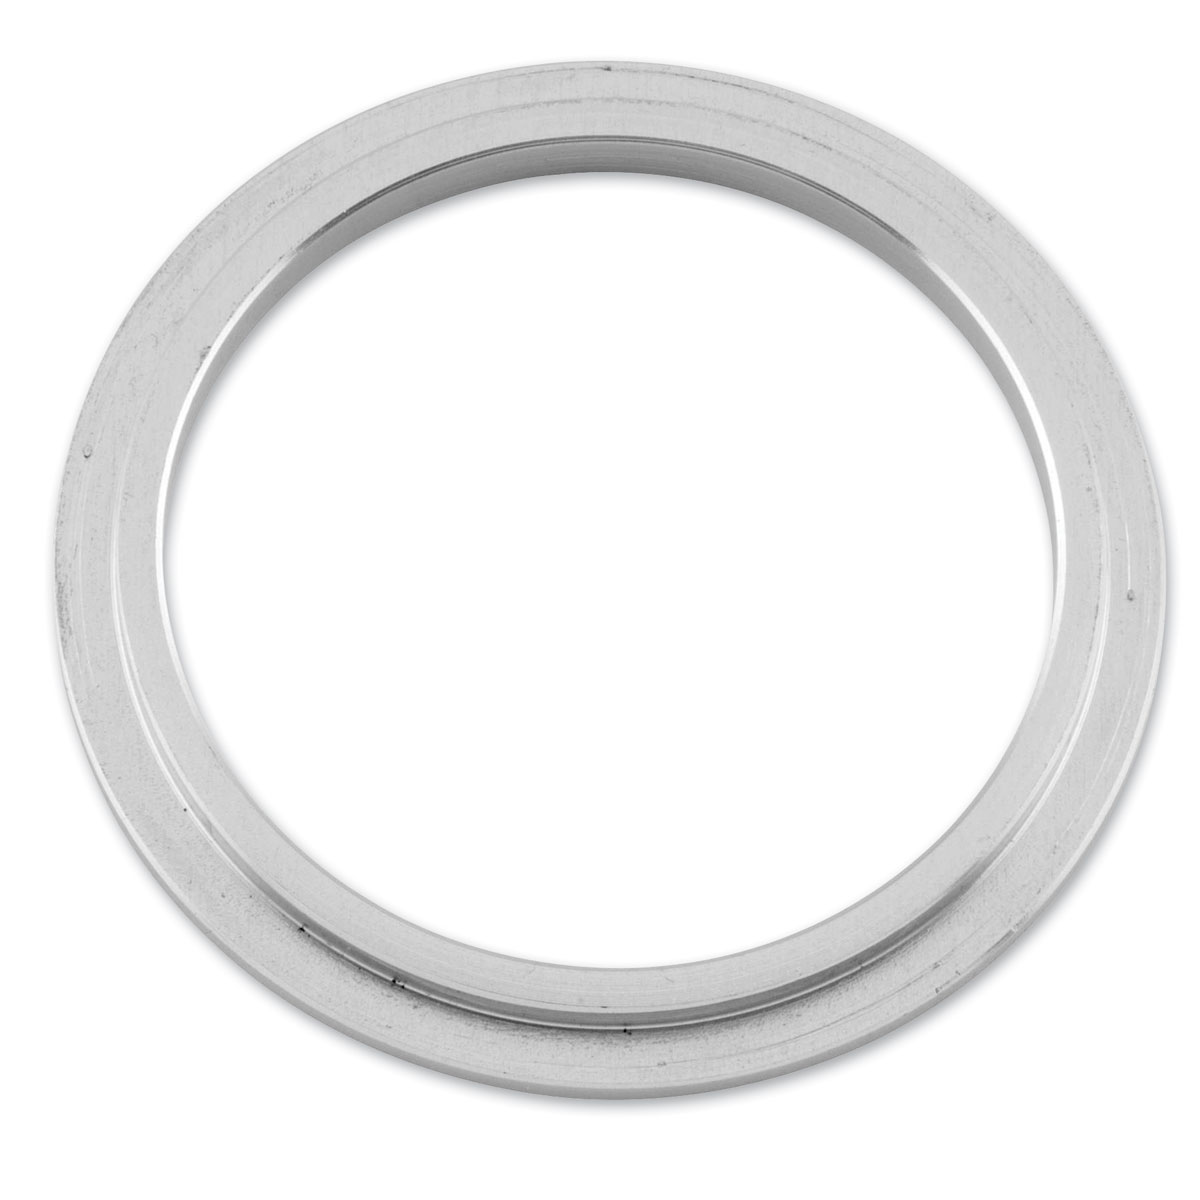 Twin Power Rotor Adapter Ring 2-1/4″ to 2″